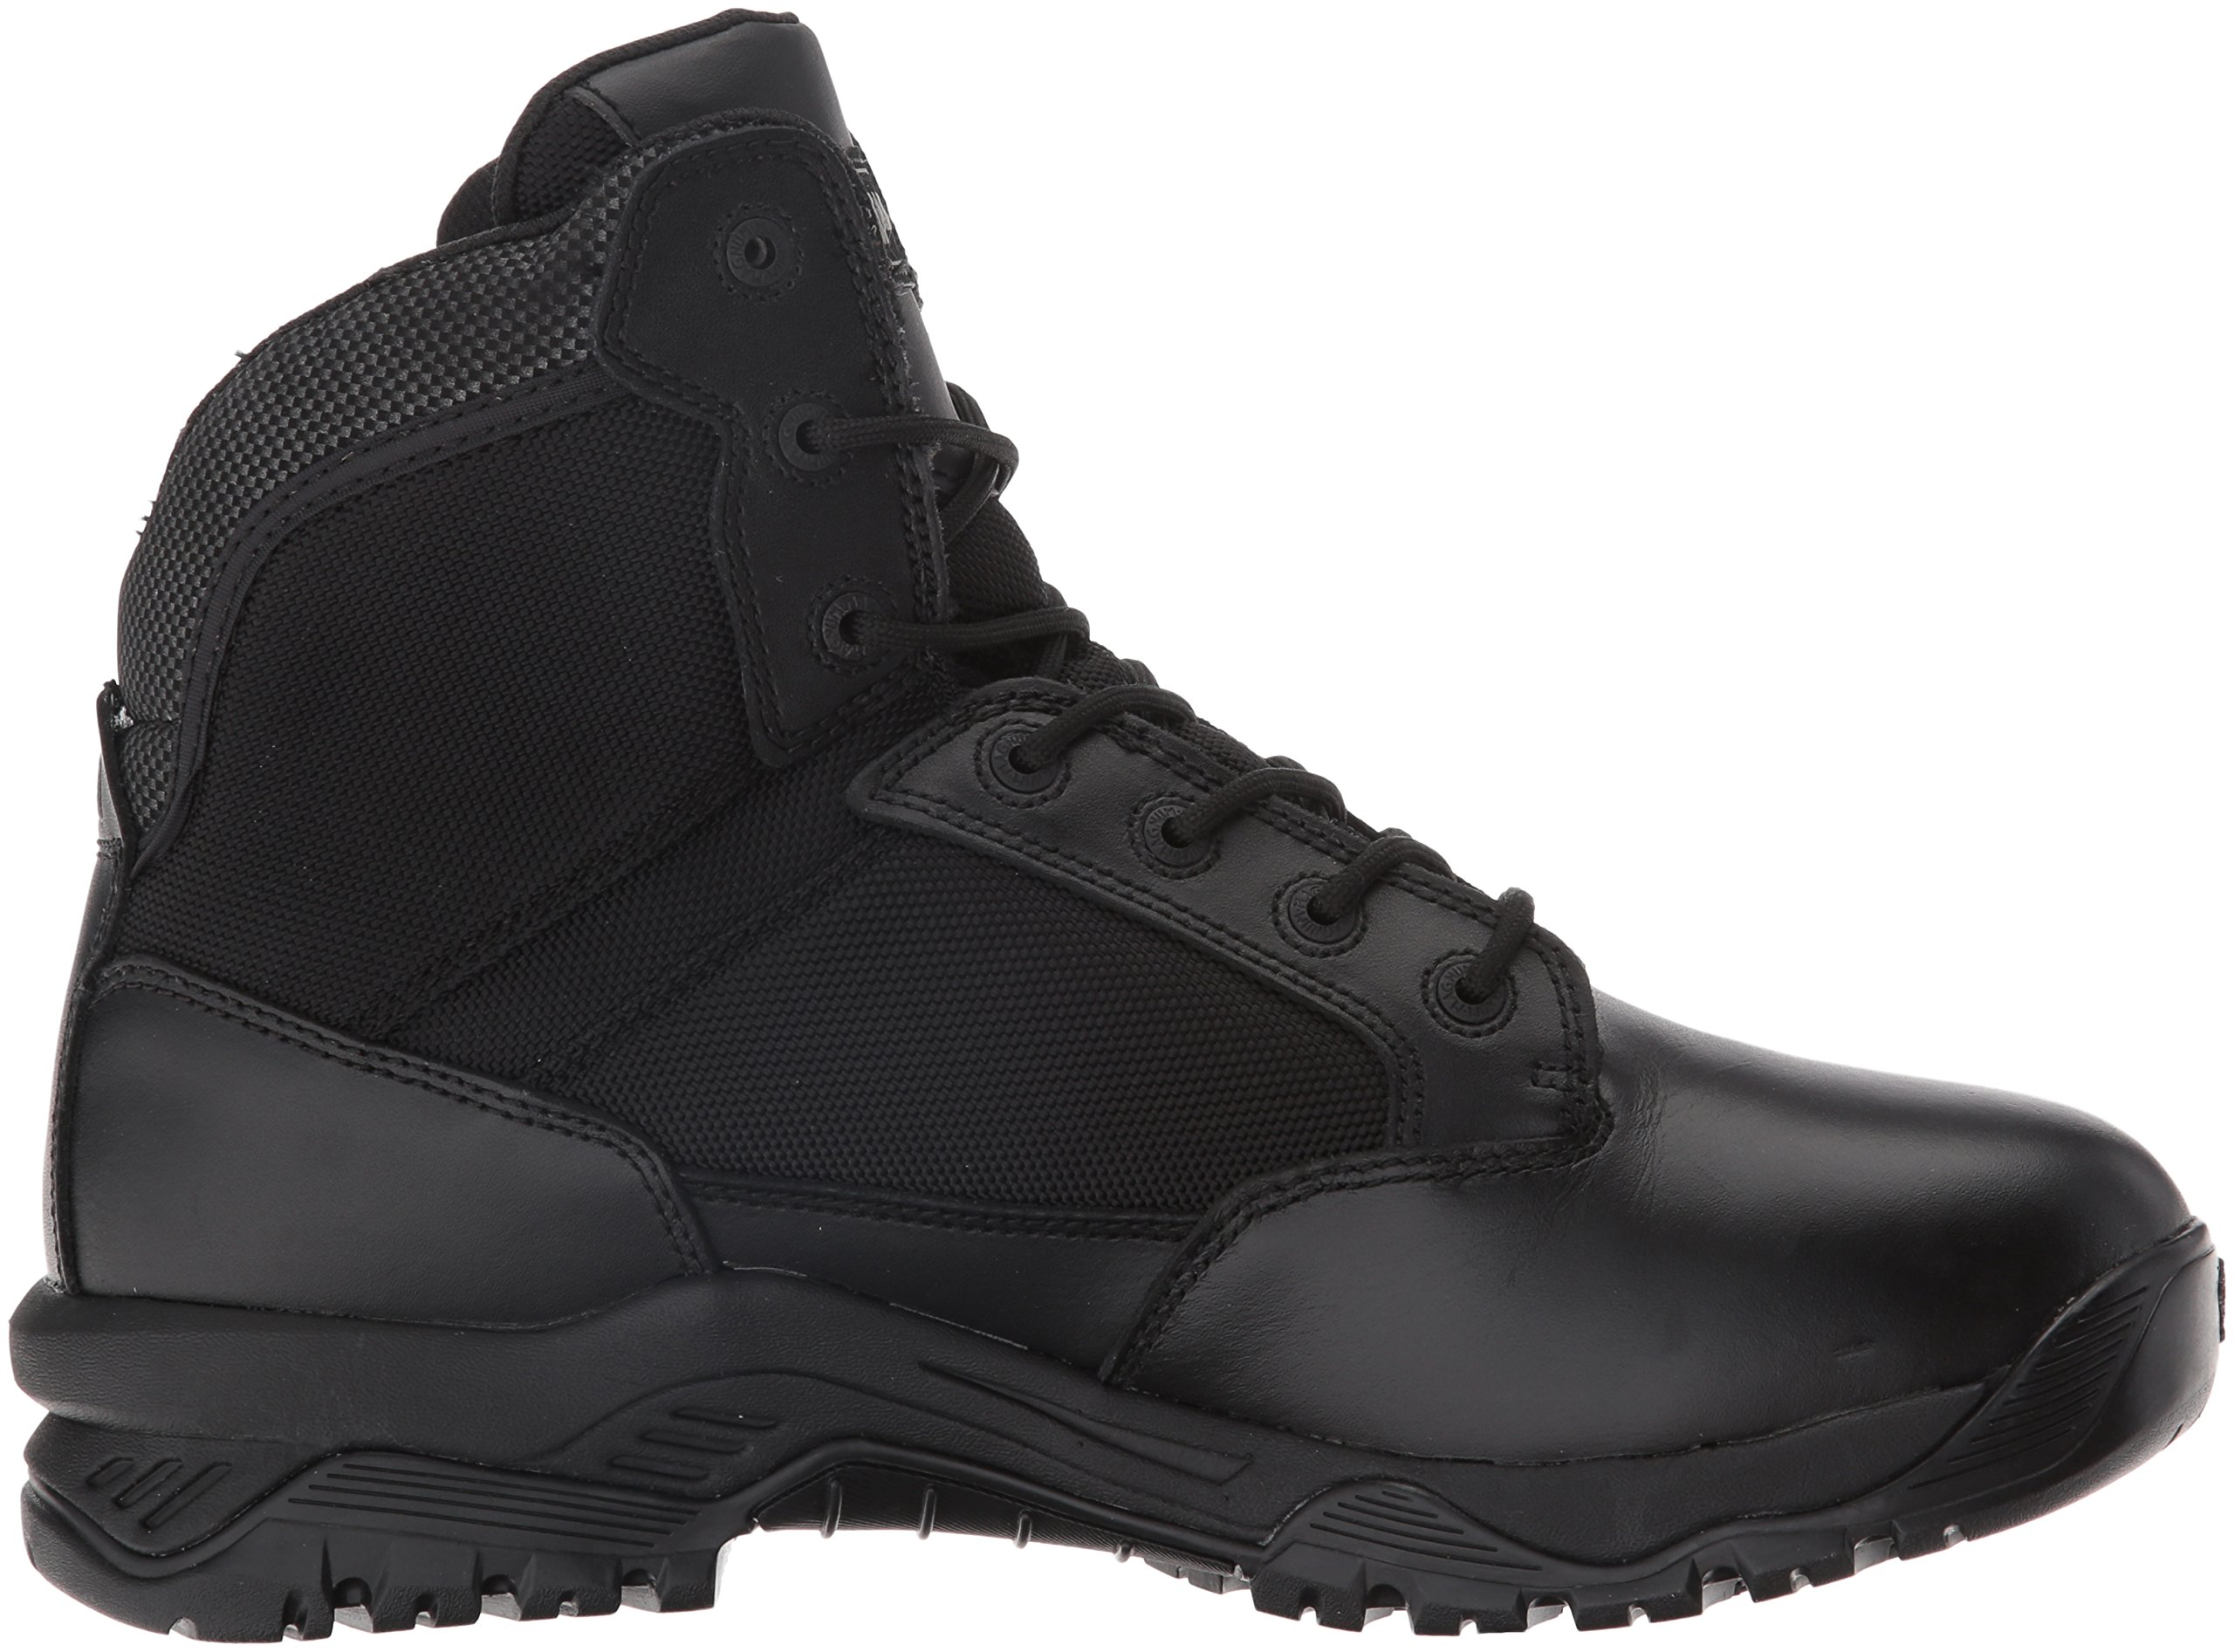 Magnum Men's Strike Force 6'' Waterproof Military & Tactical Boot, Black 14 W US by Magnum (Image #7)